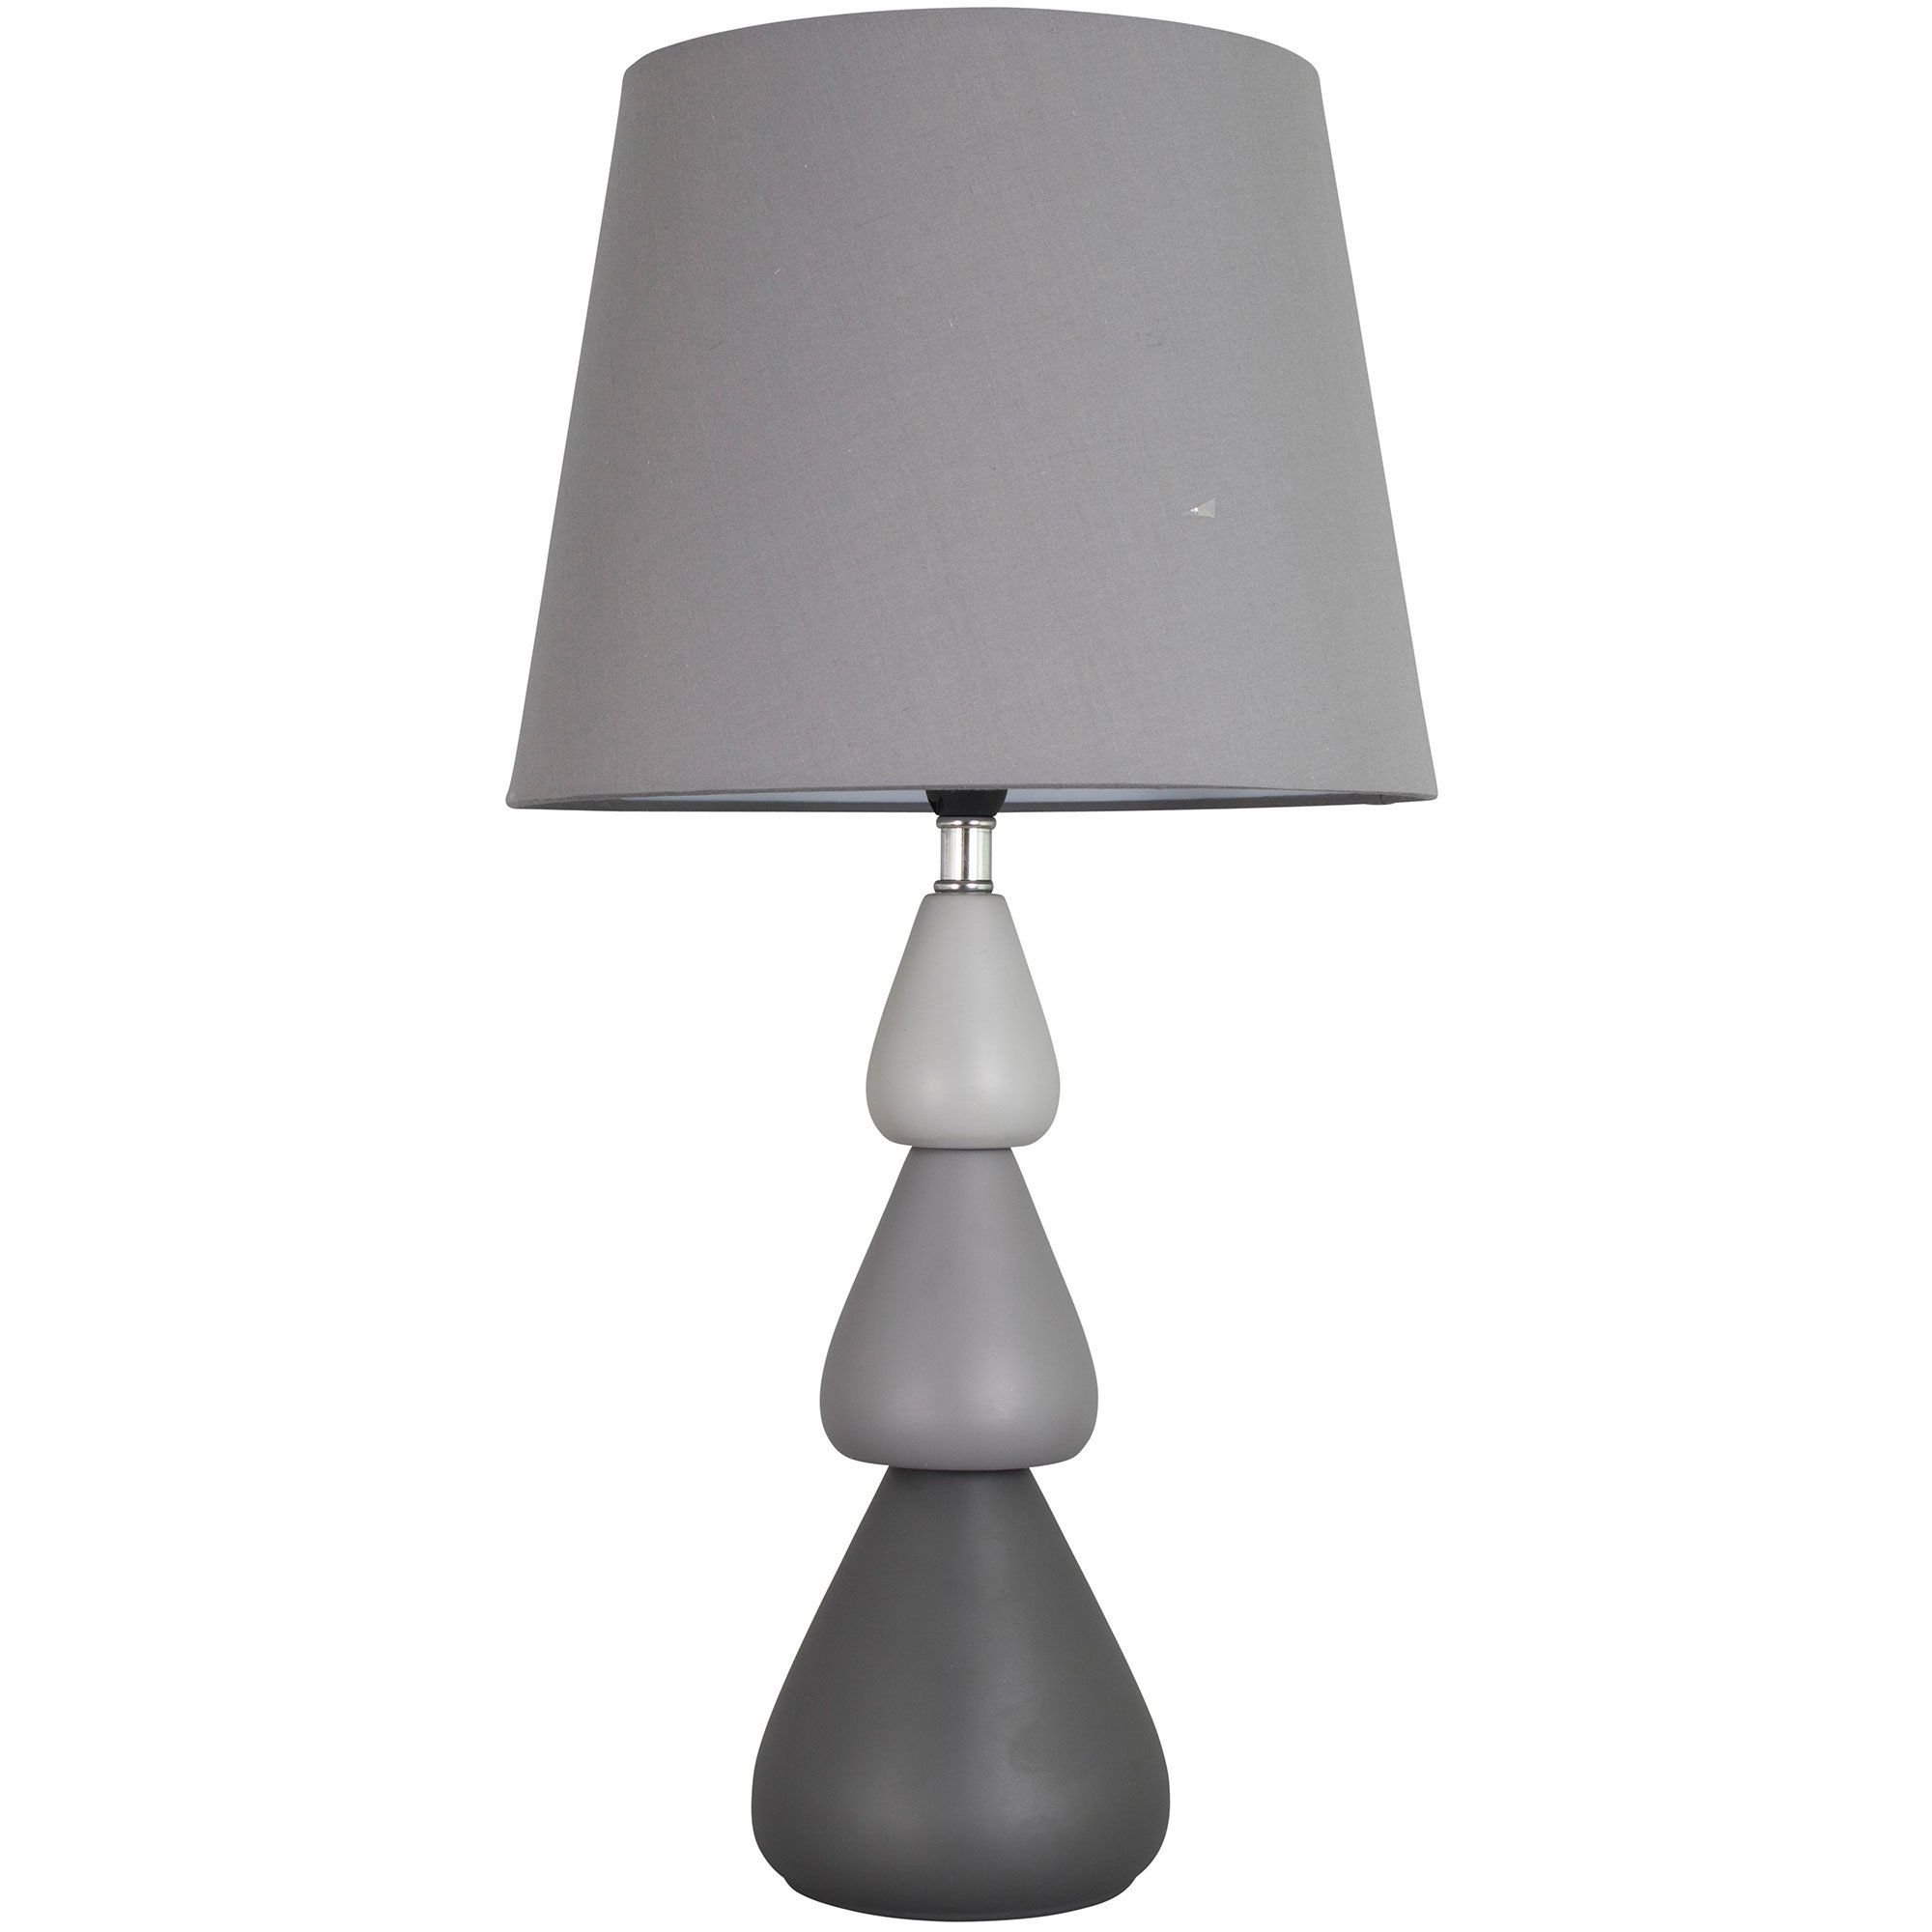 Finley 55cm Table Lamp